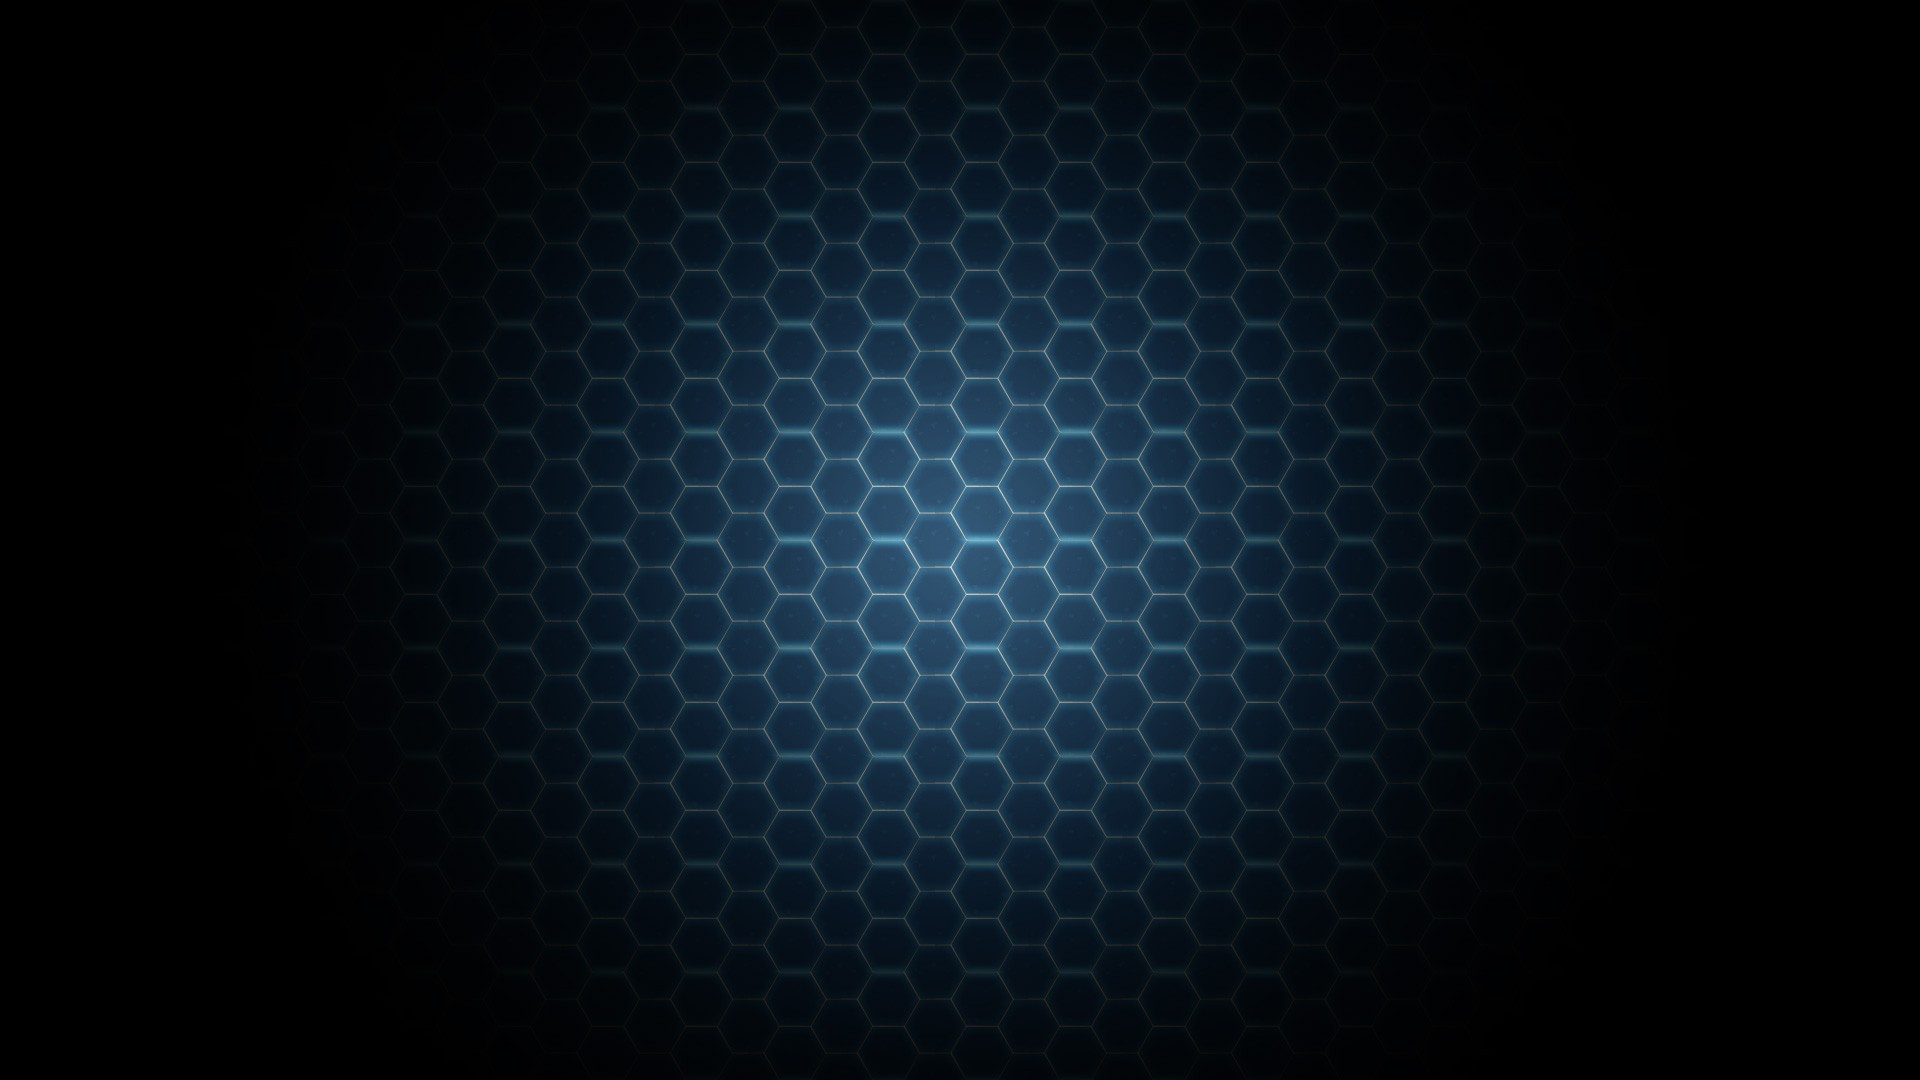 Black And Dark Blue Wallpaper